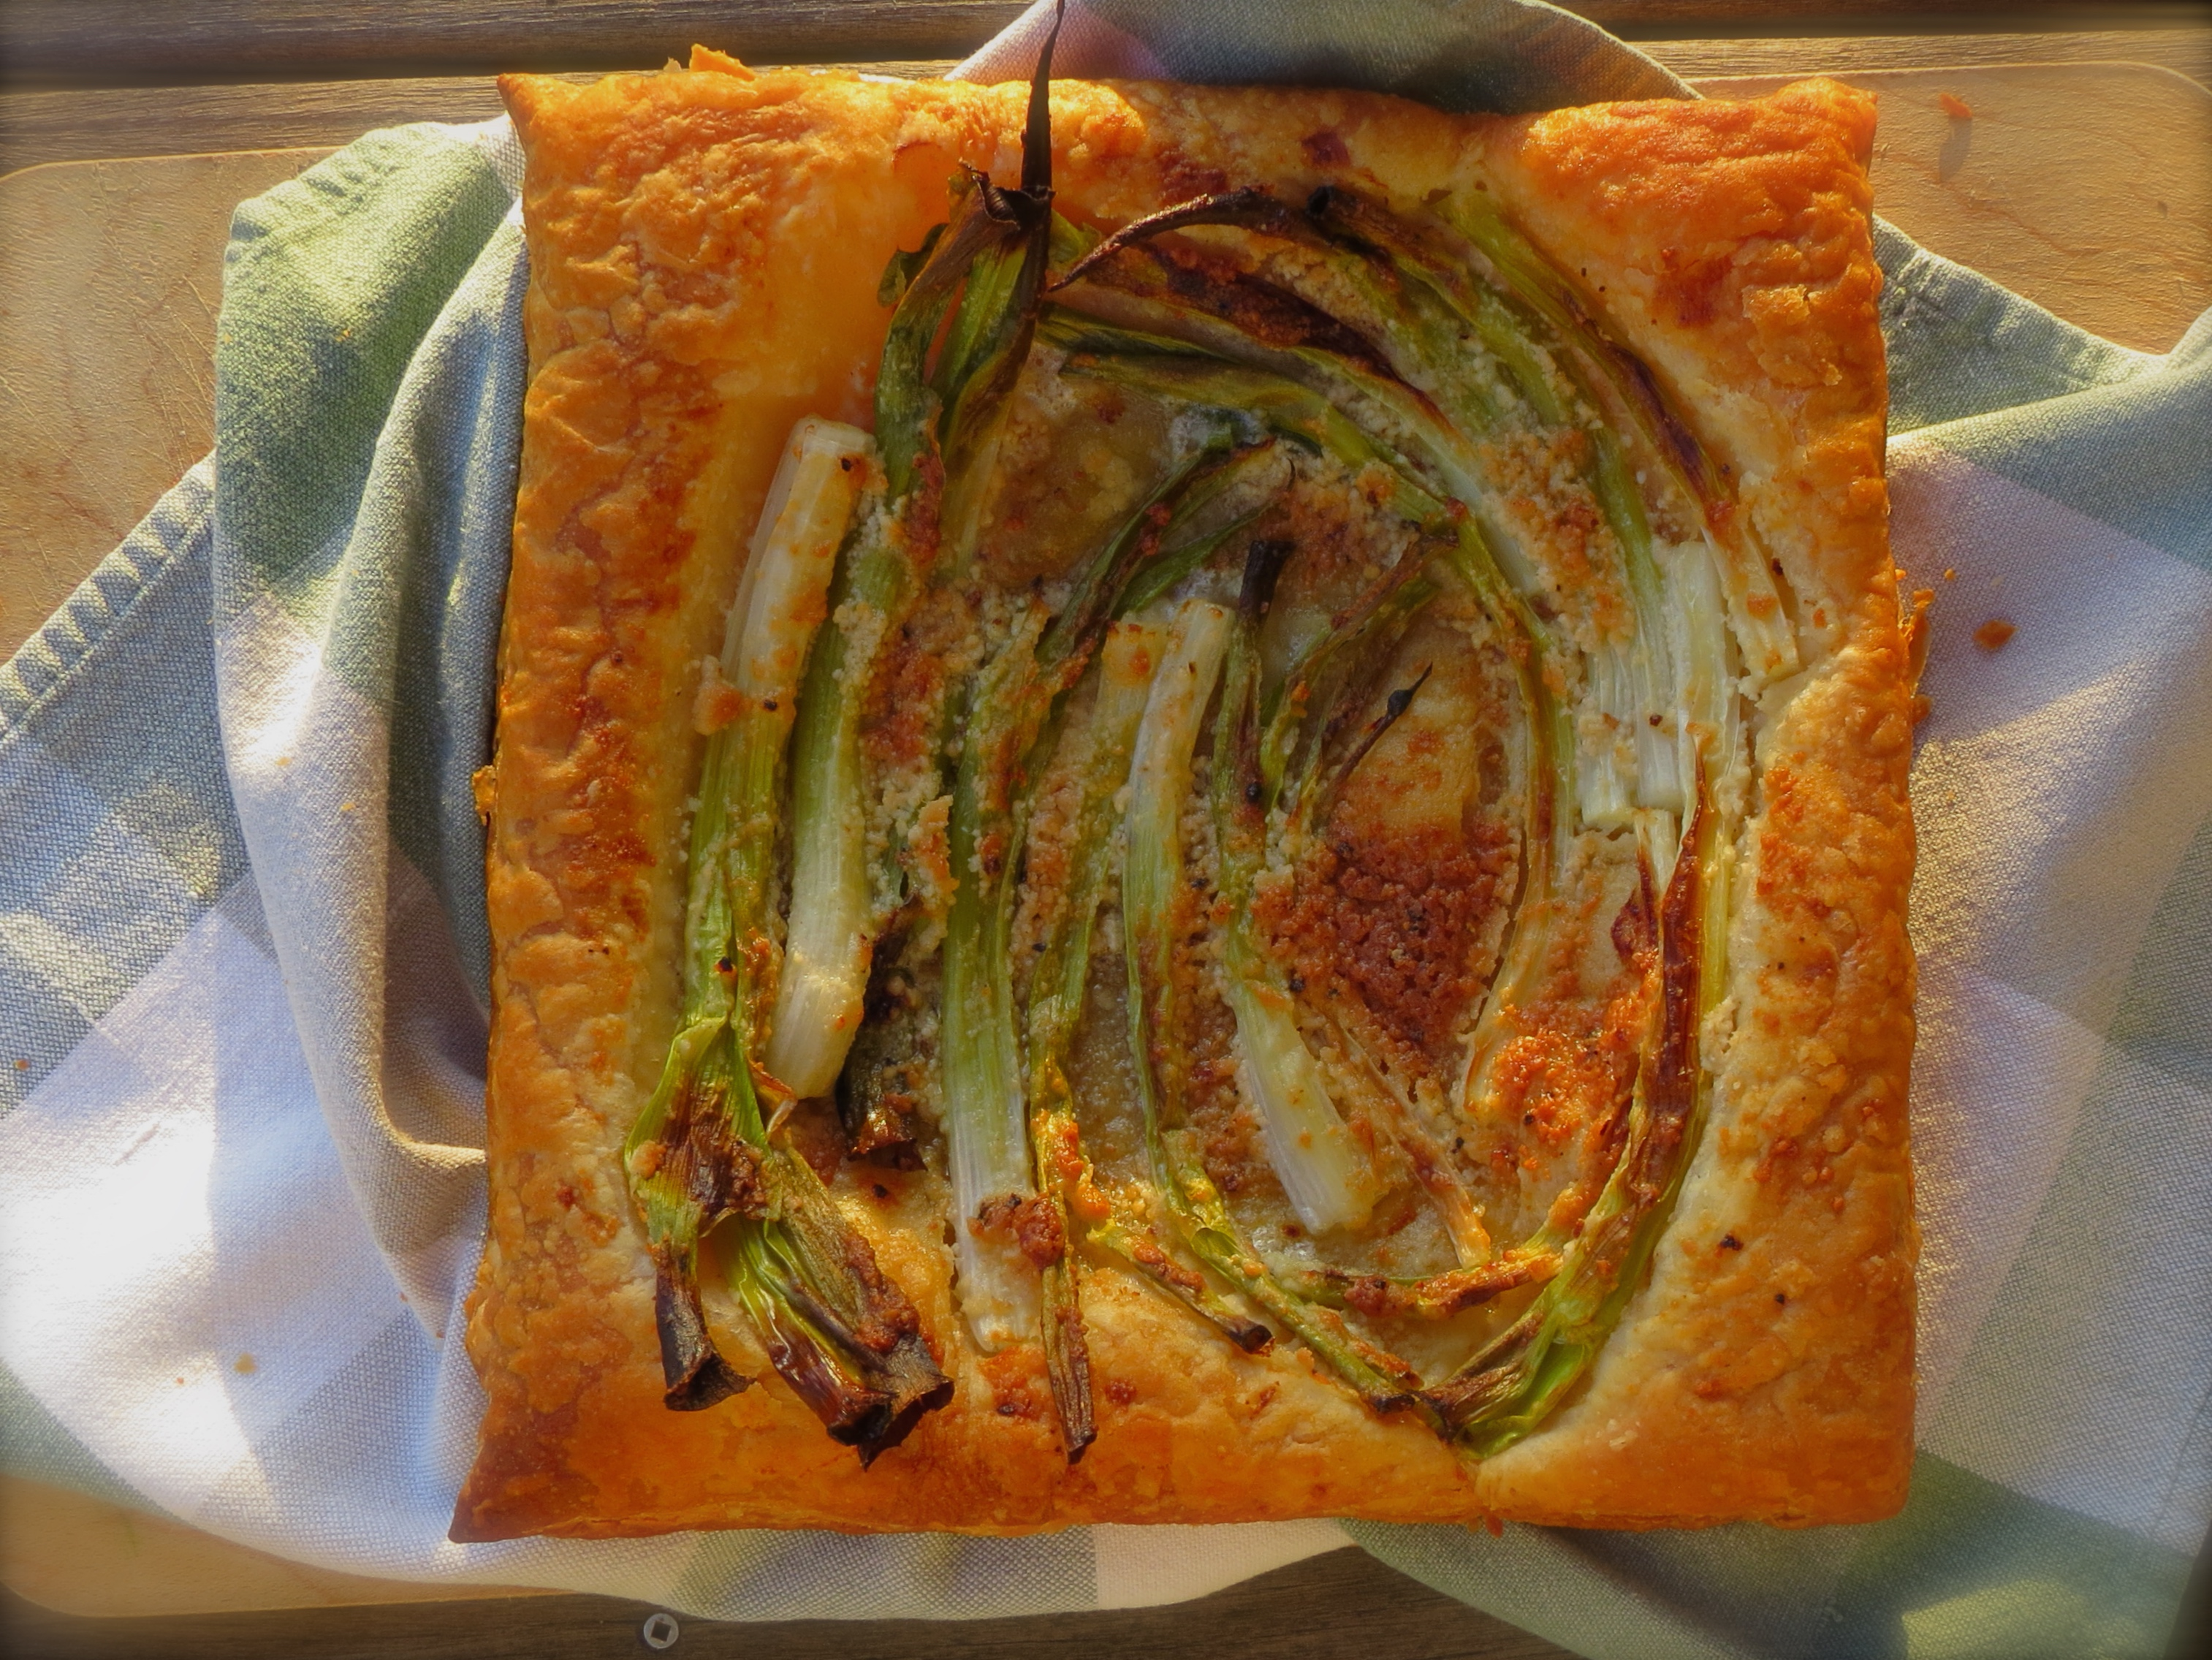 Green Onion Galette, a quick supper of puff pastry, onions and Parmesan cheese.